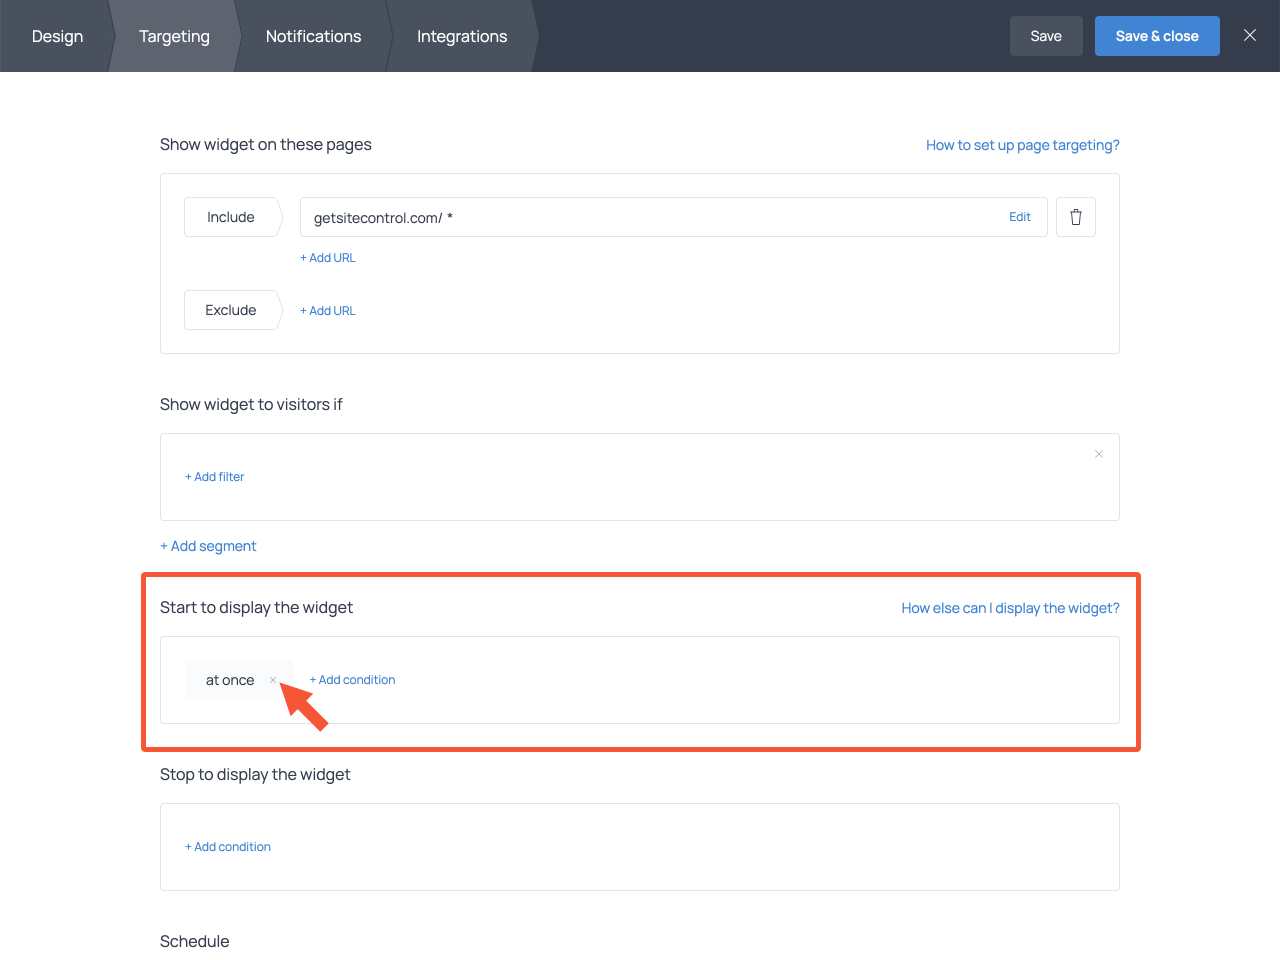 How to make sure a form pops up only after a visitor clicks on the button